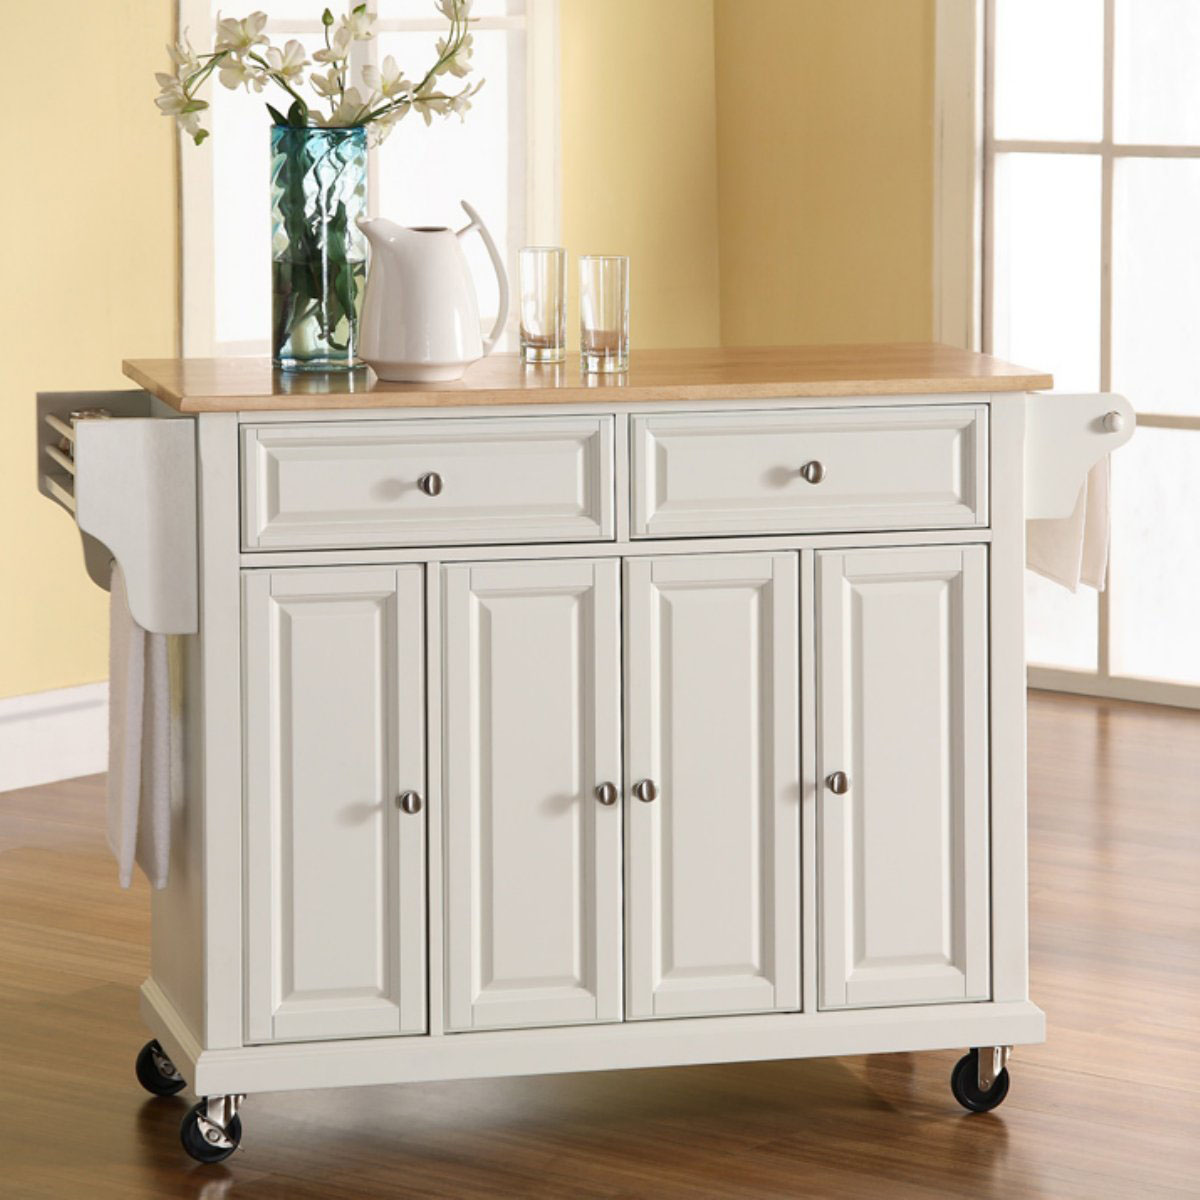 kitchen carts and islands home decorator shop antique mobile kitchen island carts orchidlagoon com